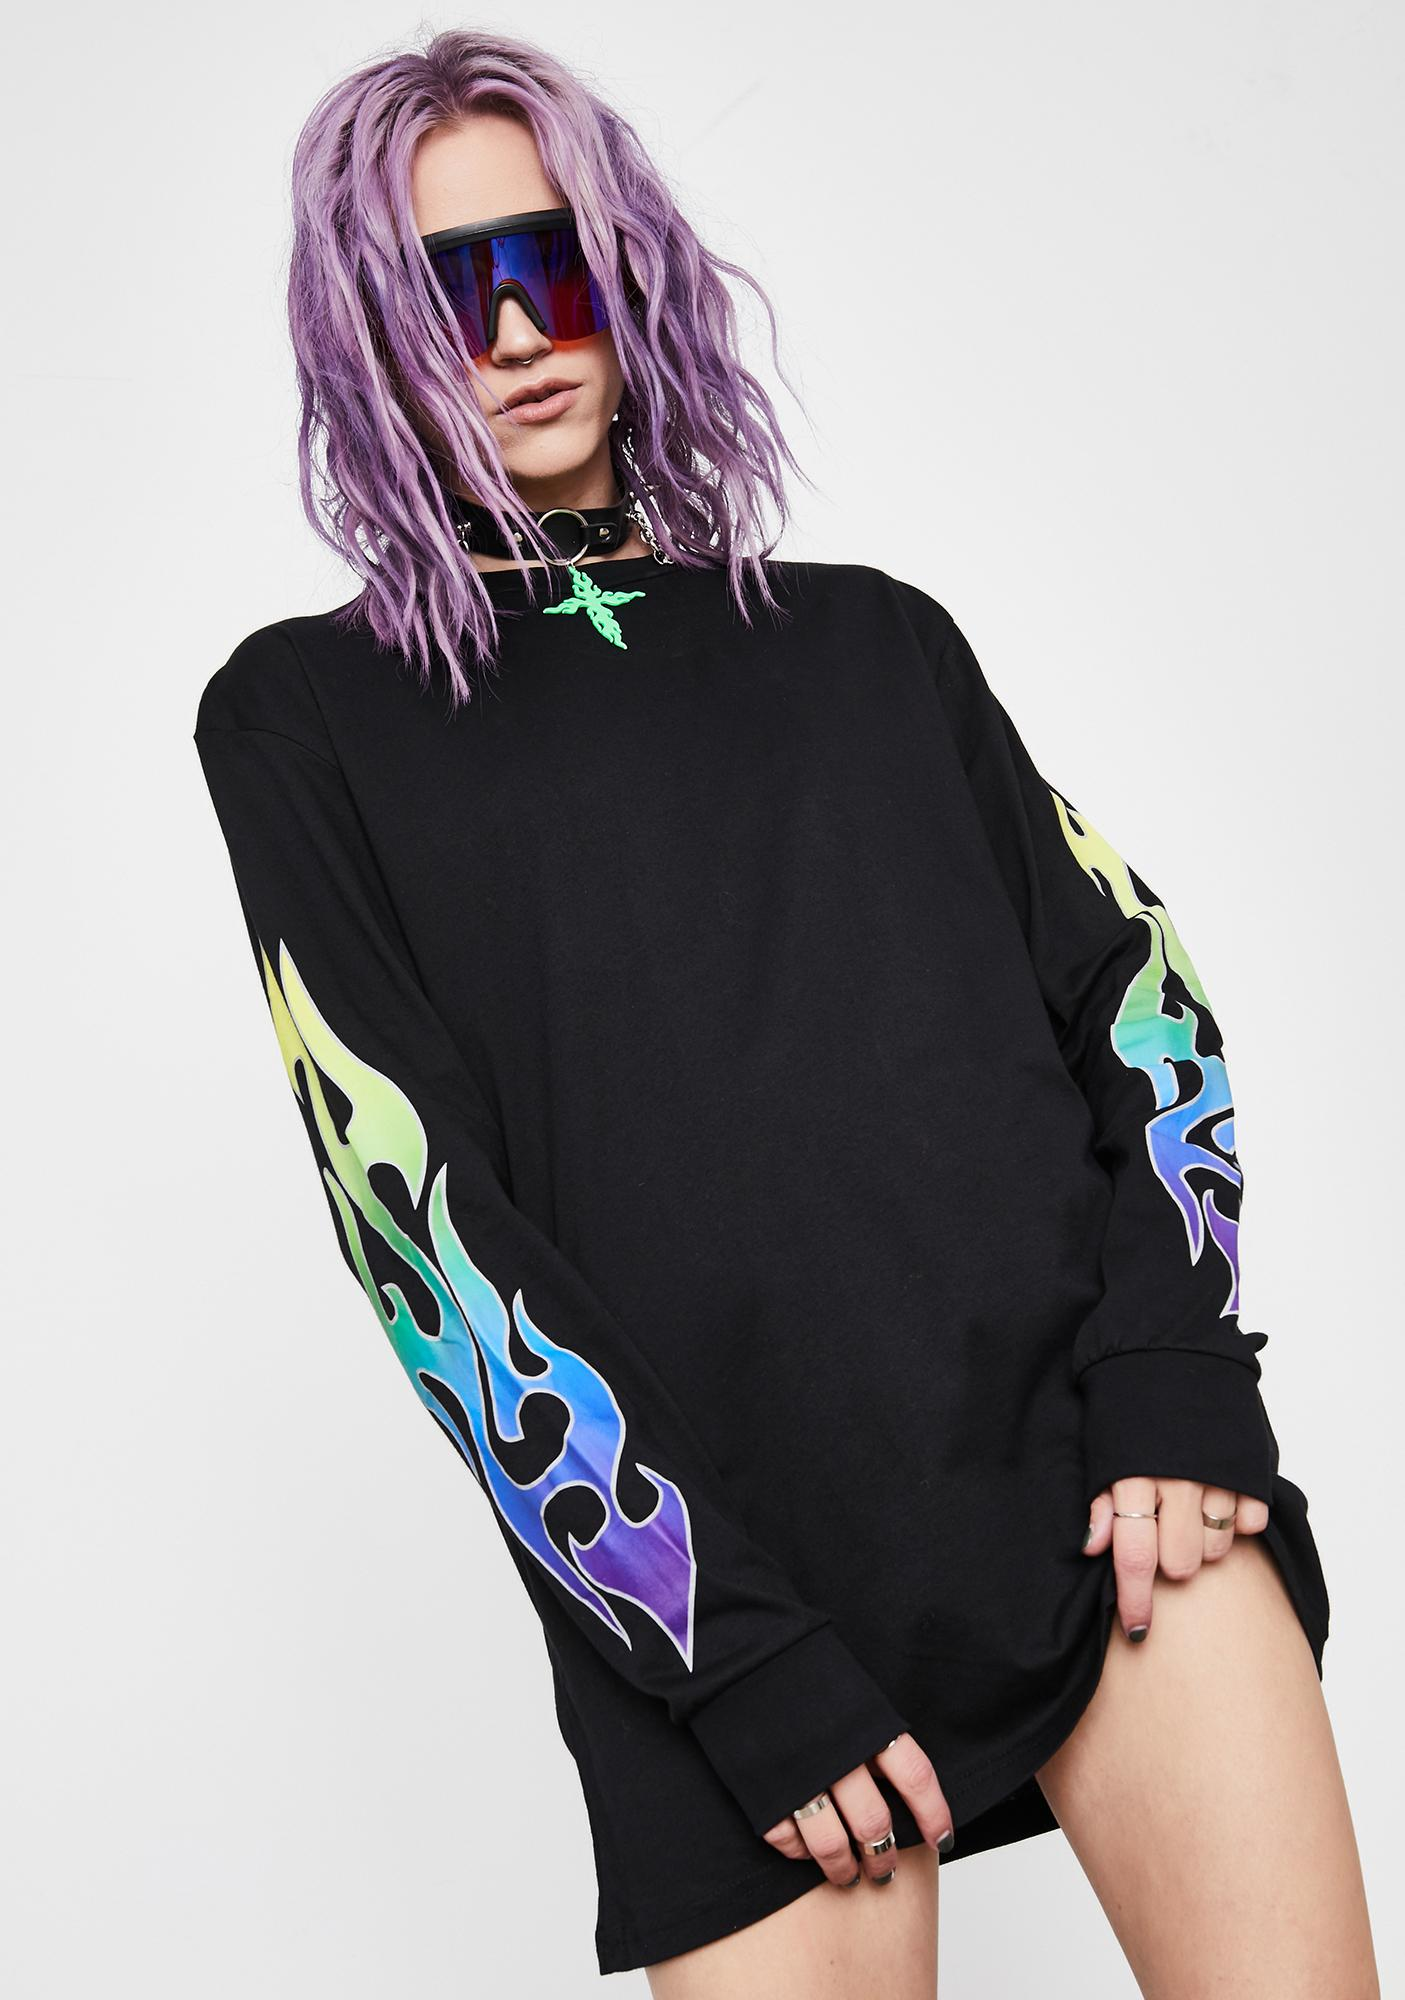 Current Mood Burning Prisms Graphic Tee